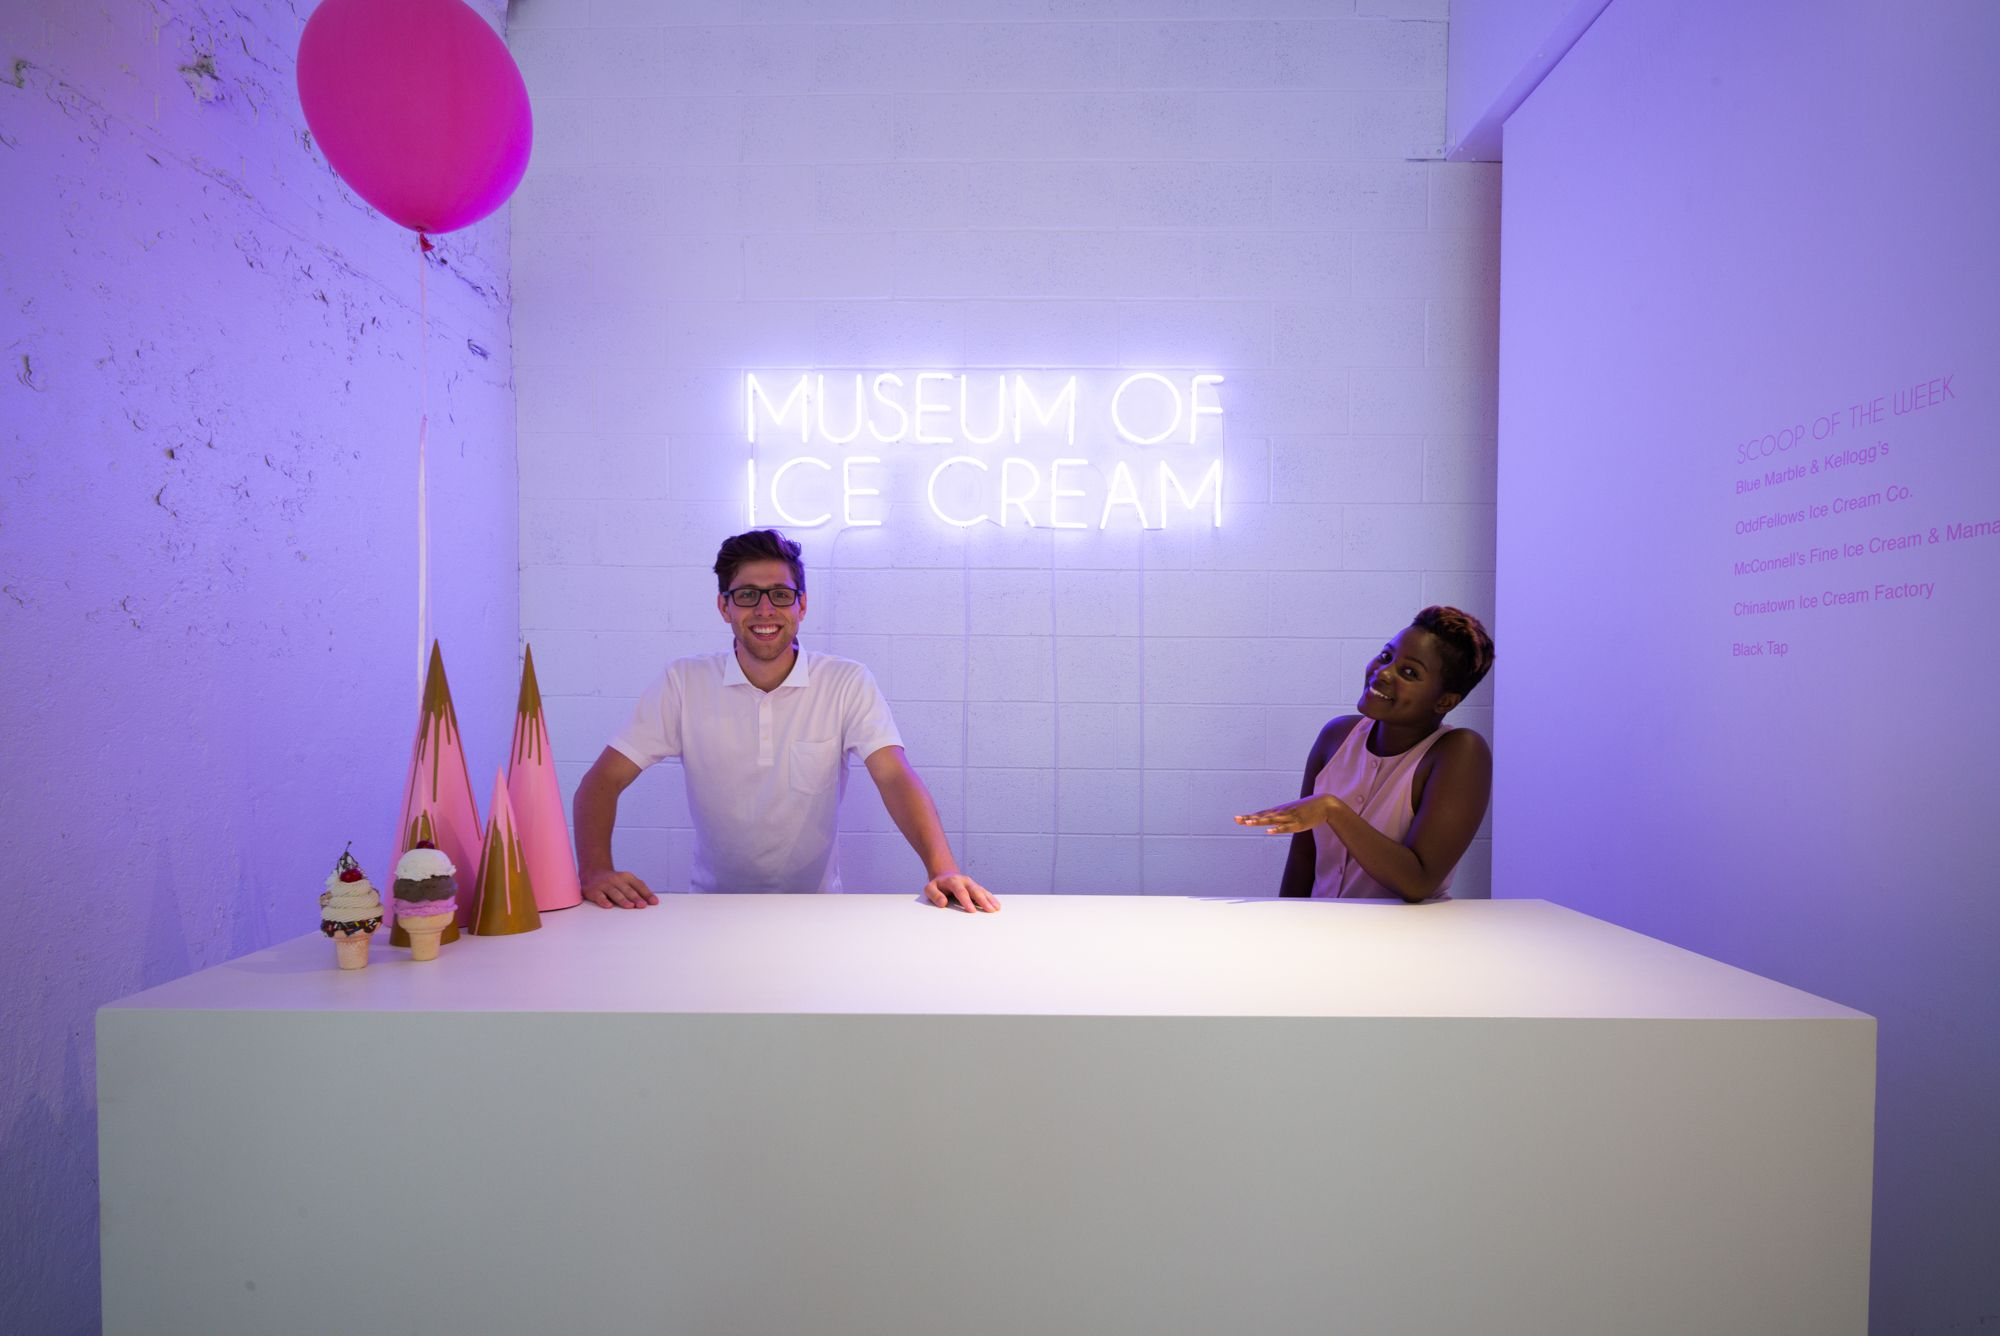 Museum Of Ice Cream Pop Up Opens With Sprinkles Galore